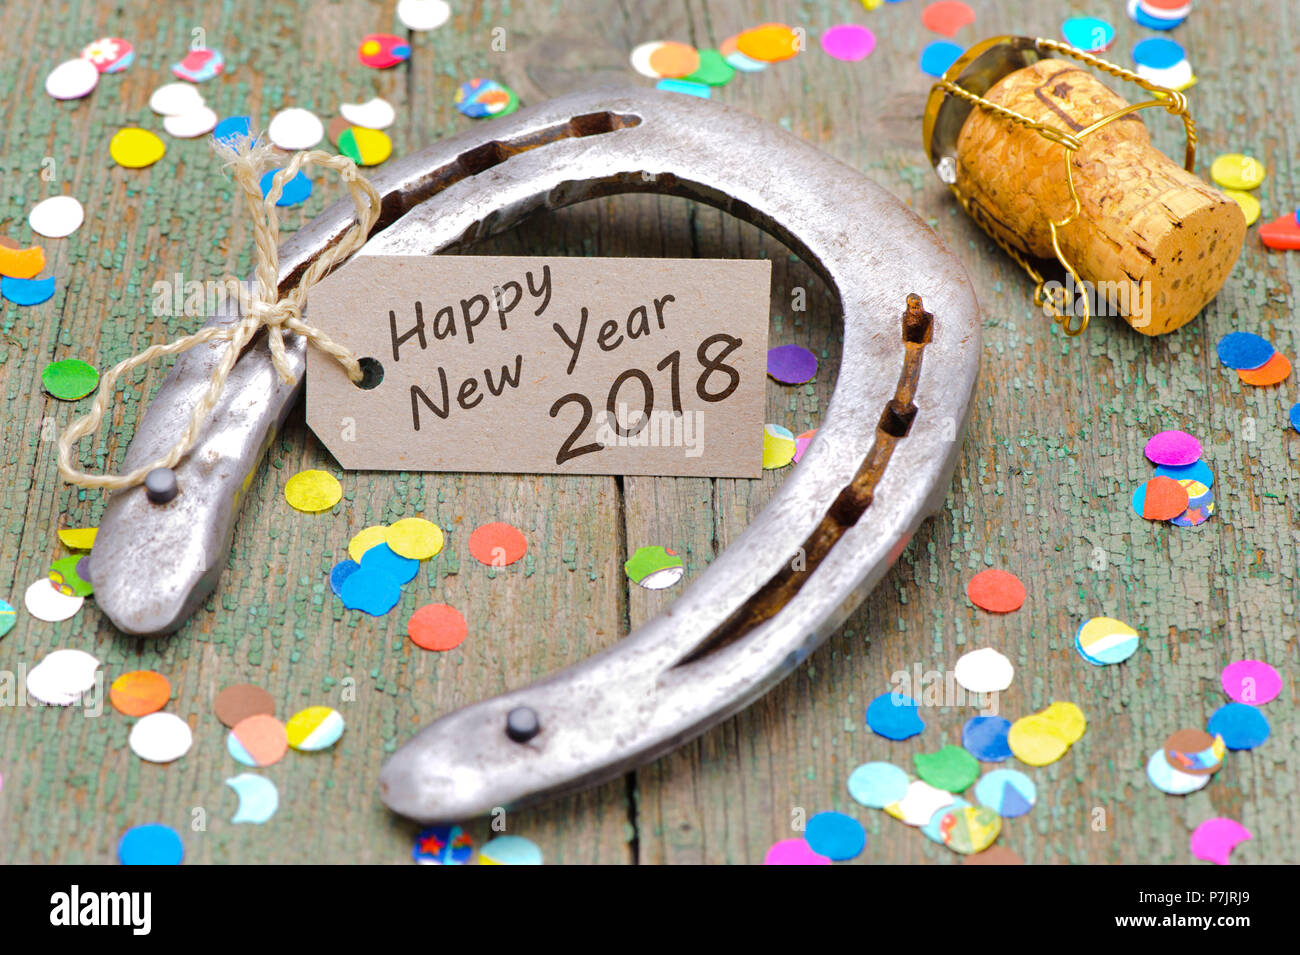 horseshoe with happy new year wishes 2018